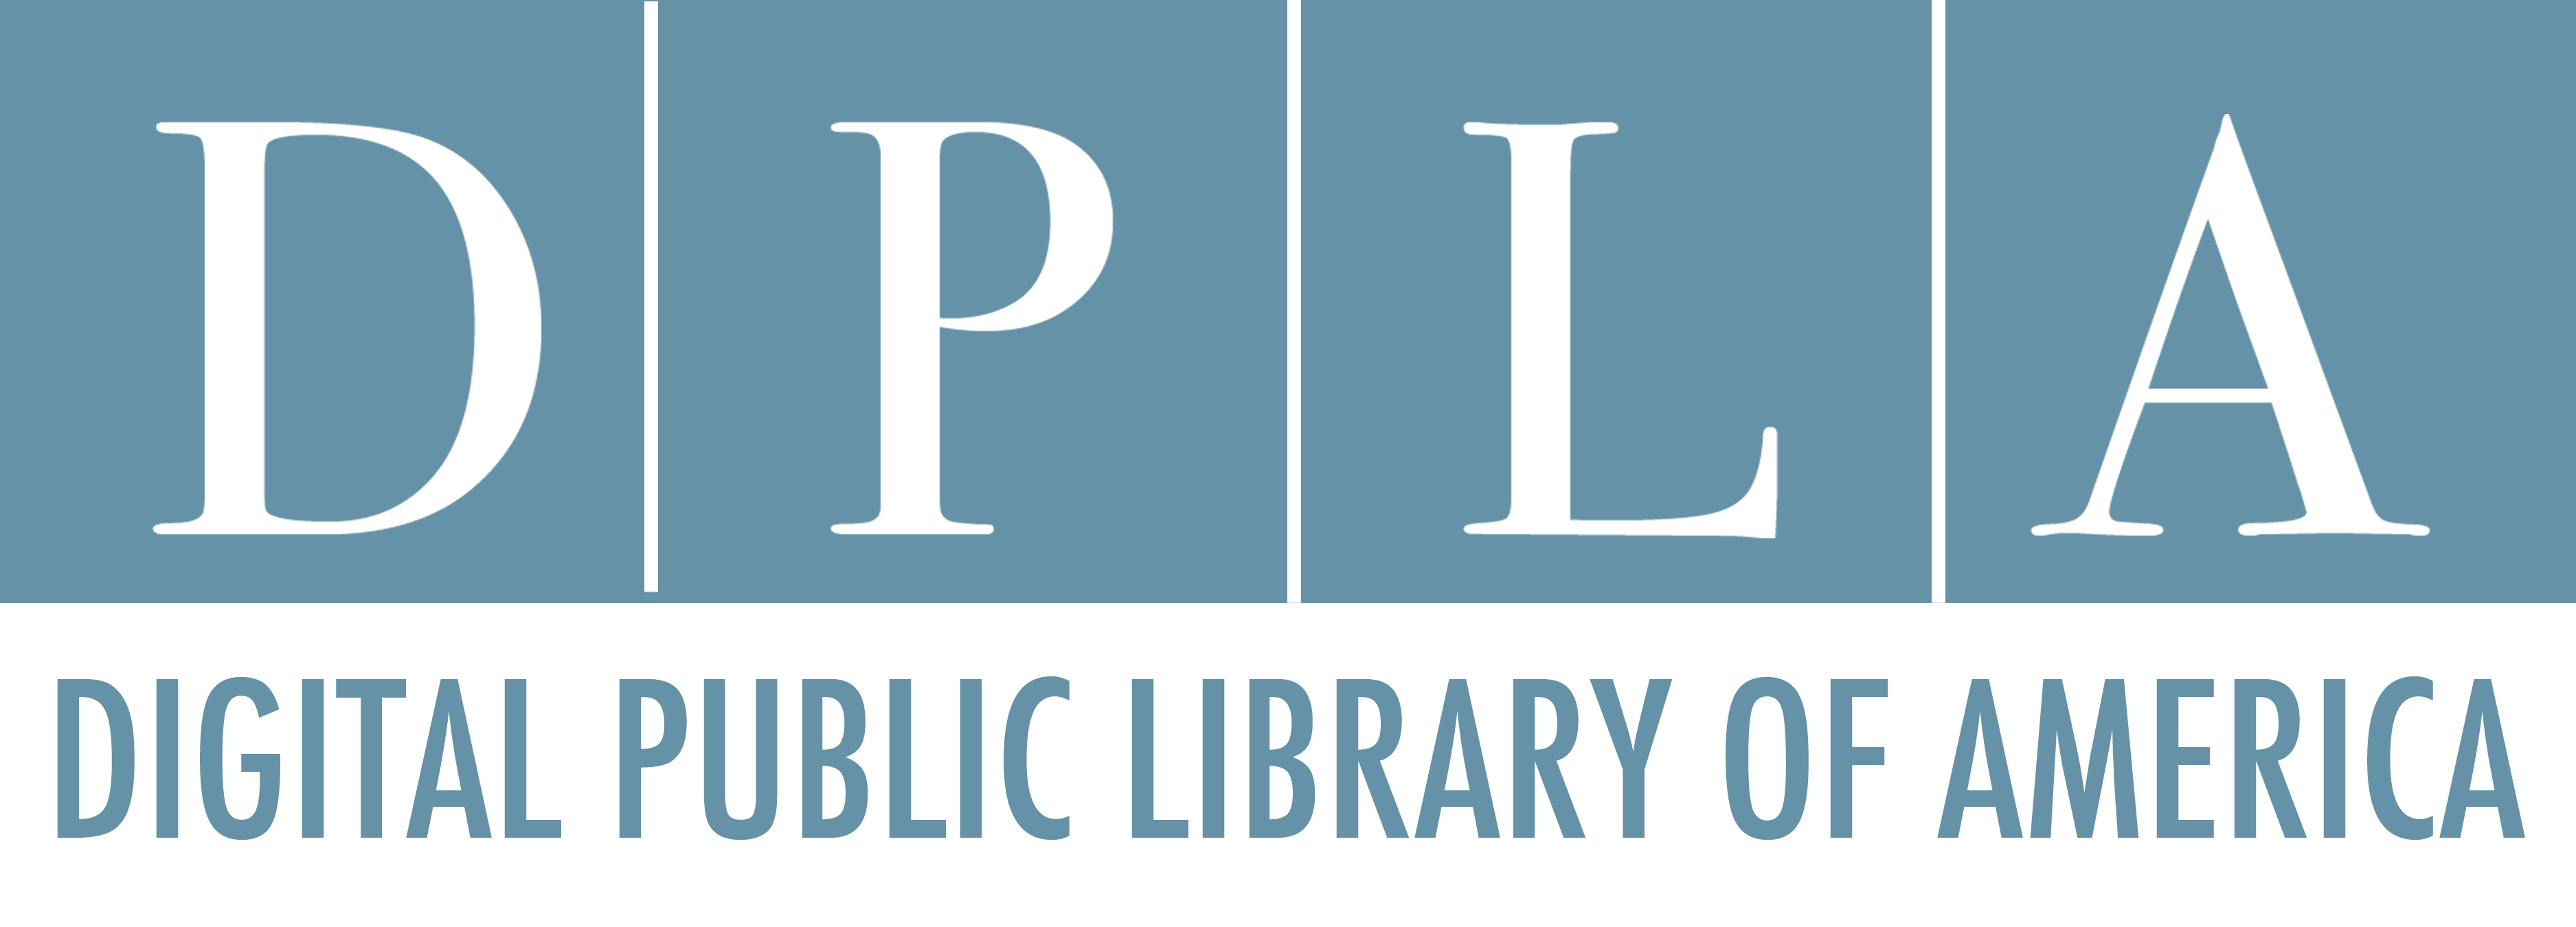 Digital Public Library of America Image